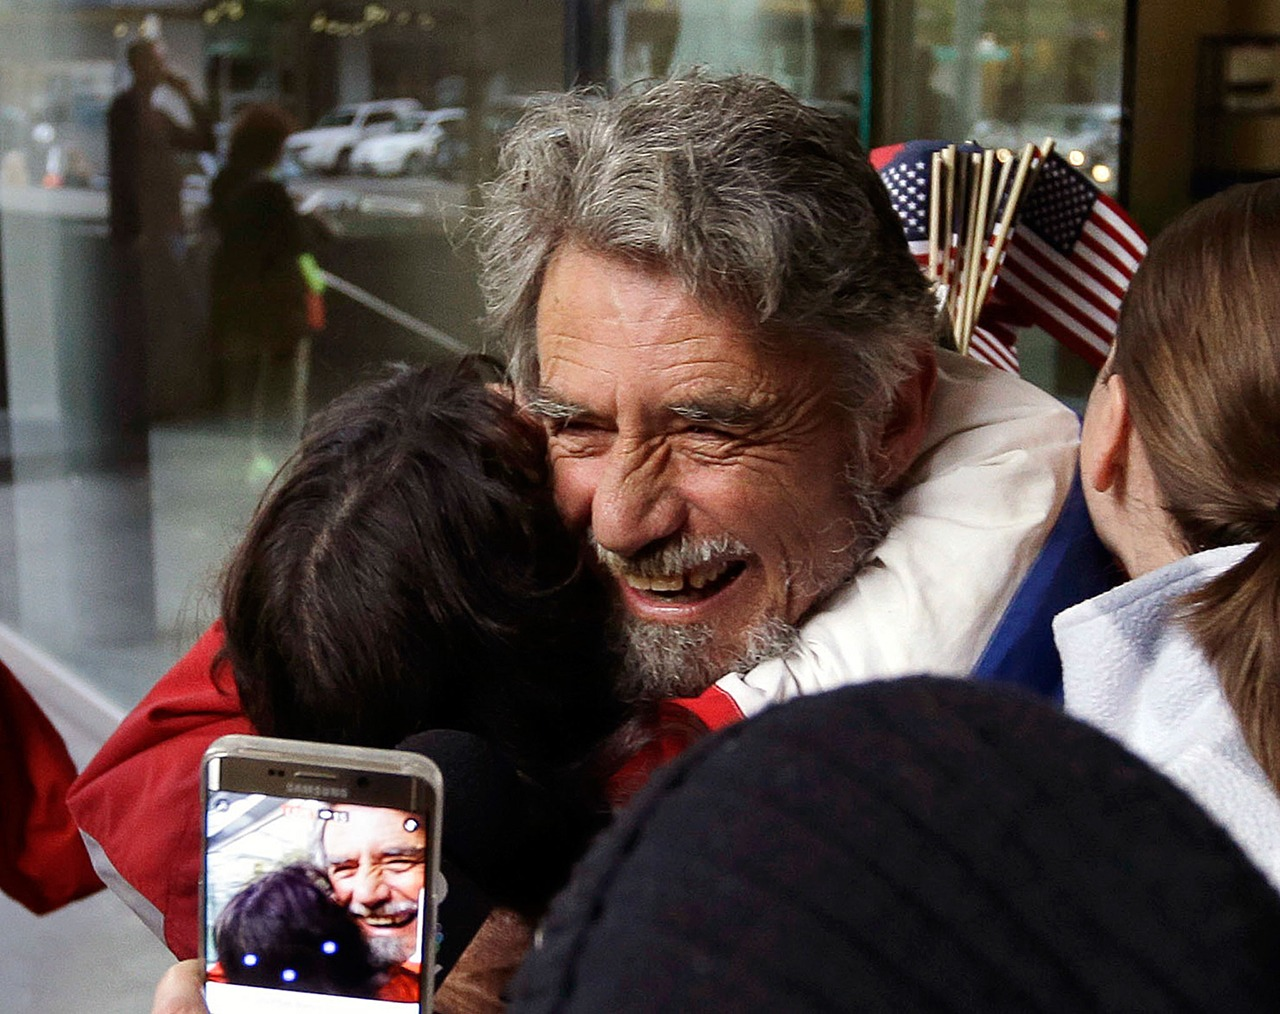 Defendant Neil Wampler is greeted by supporters as he leaves federal court in Portland, Oregon, on Thursday. (AP Photo/Don Ryan)